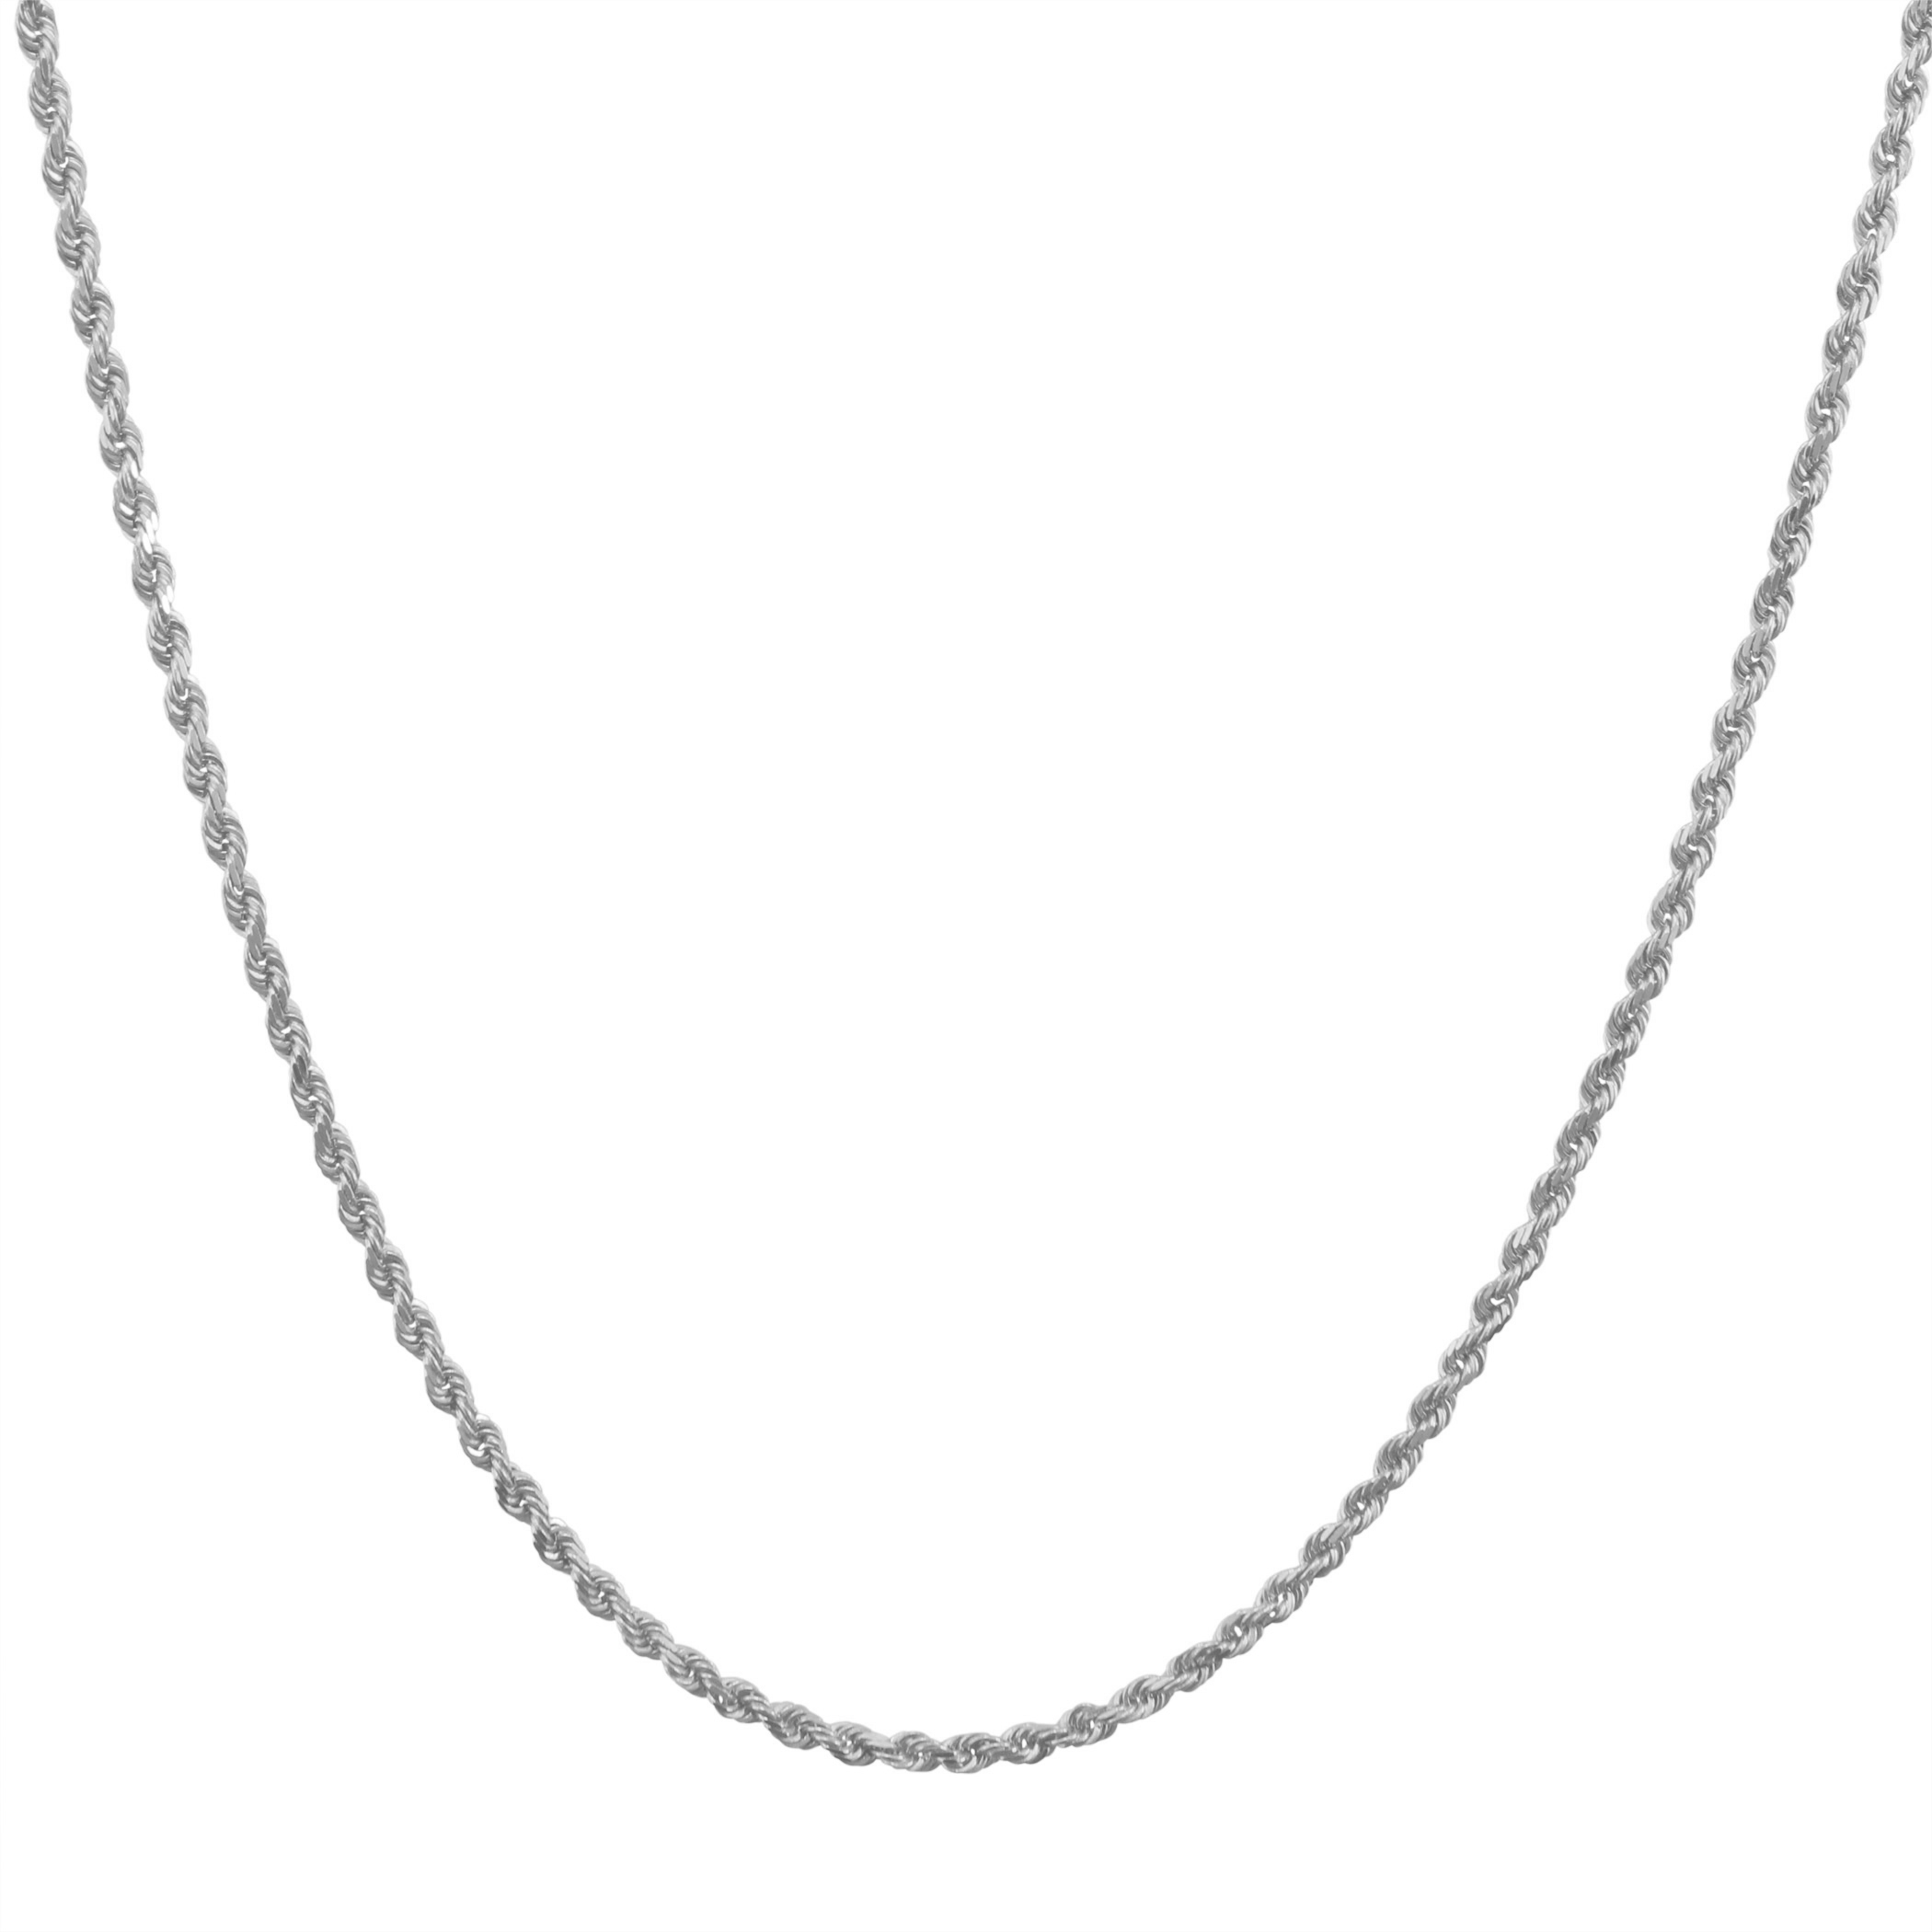 14K-White-Gold-Italian-2-5mm-Diamond-Cut-Rope-Chain-Pendant-Necklace-14-034-30-034 thumbnail 14